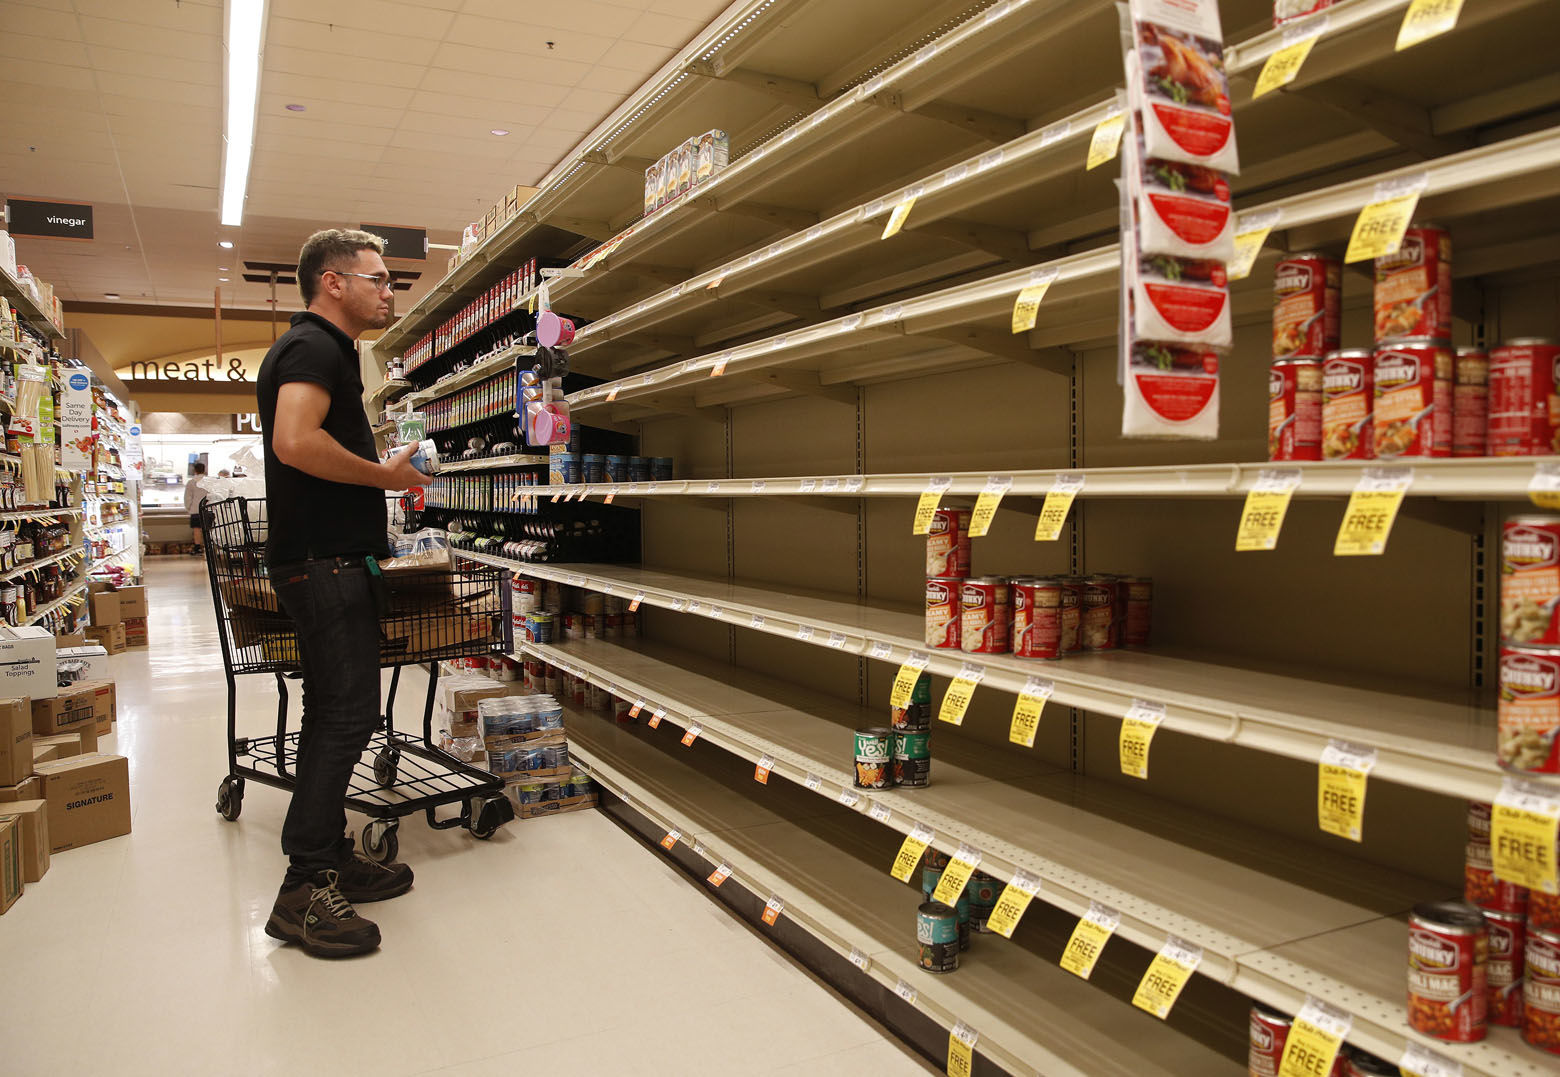 A worker looks at empty shelves for canned goods at a supermarket ahead of Hurricane Lane, Friday, Aug. 24, 2018, in Honolulu. (AP Photo/John Locher)